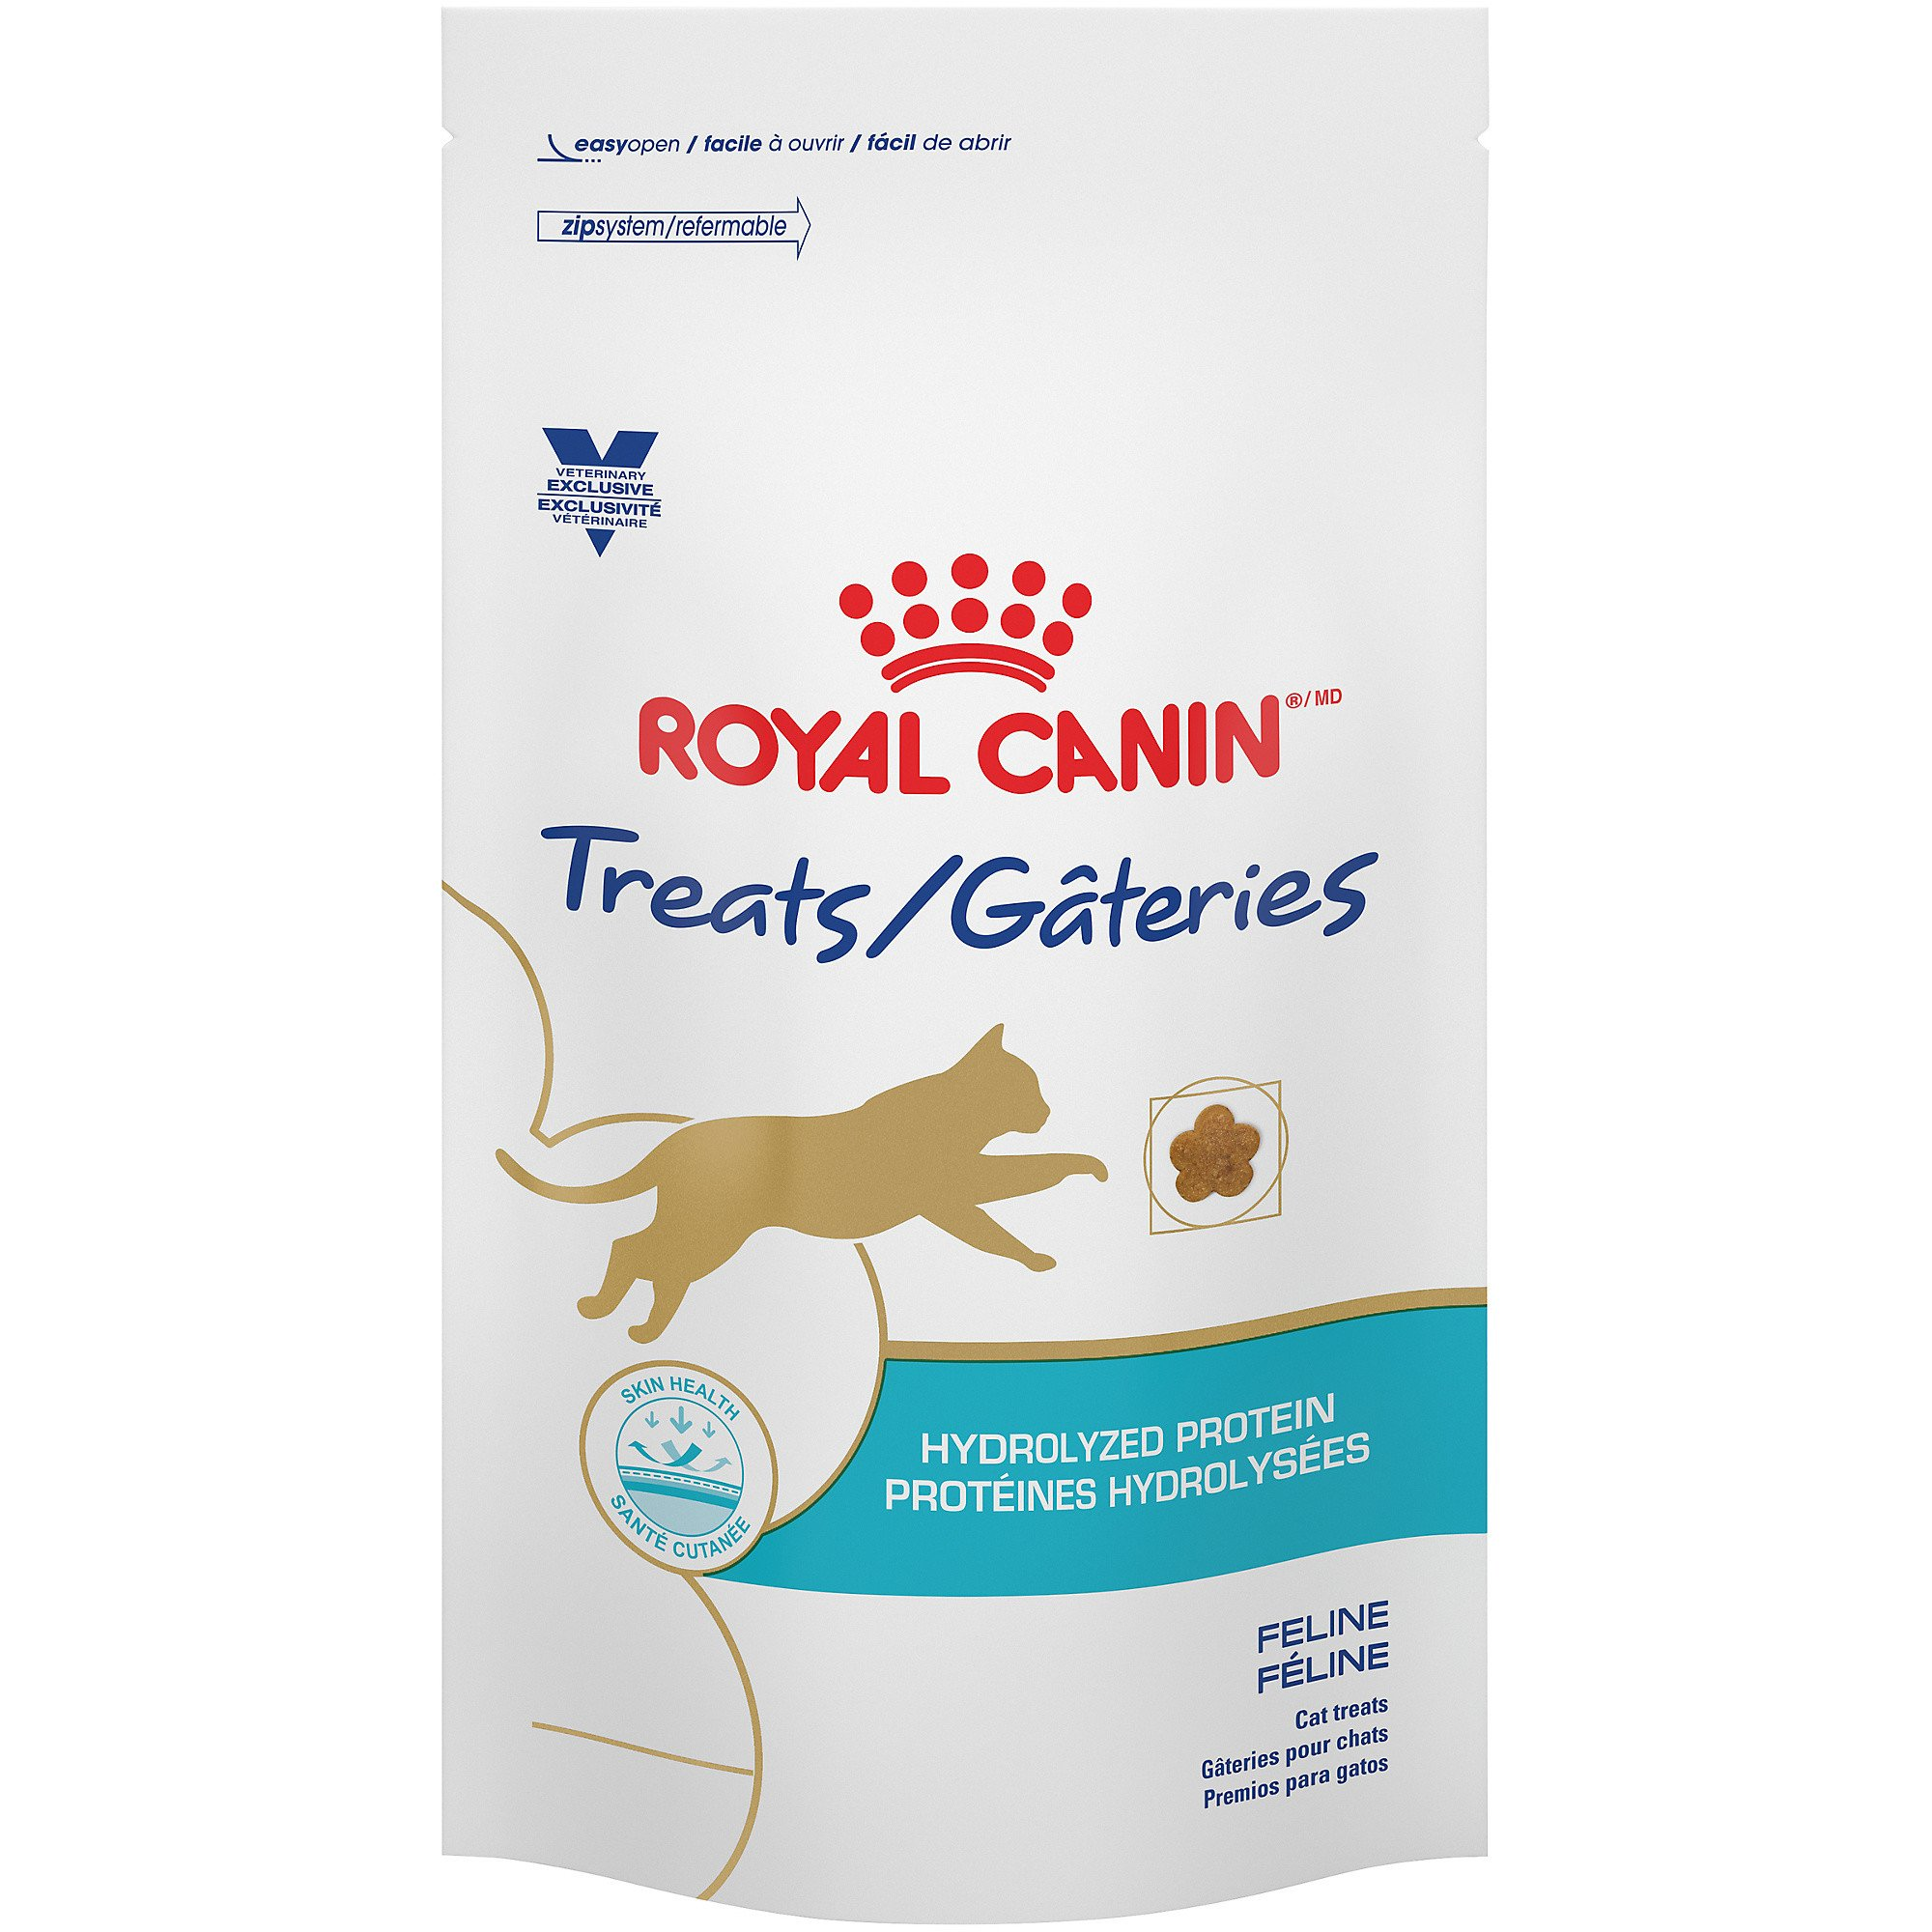 Royal Canin Hydrolyzed Protein Wet Cat Food